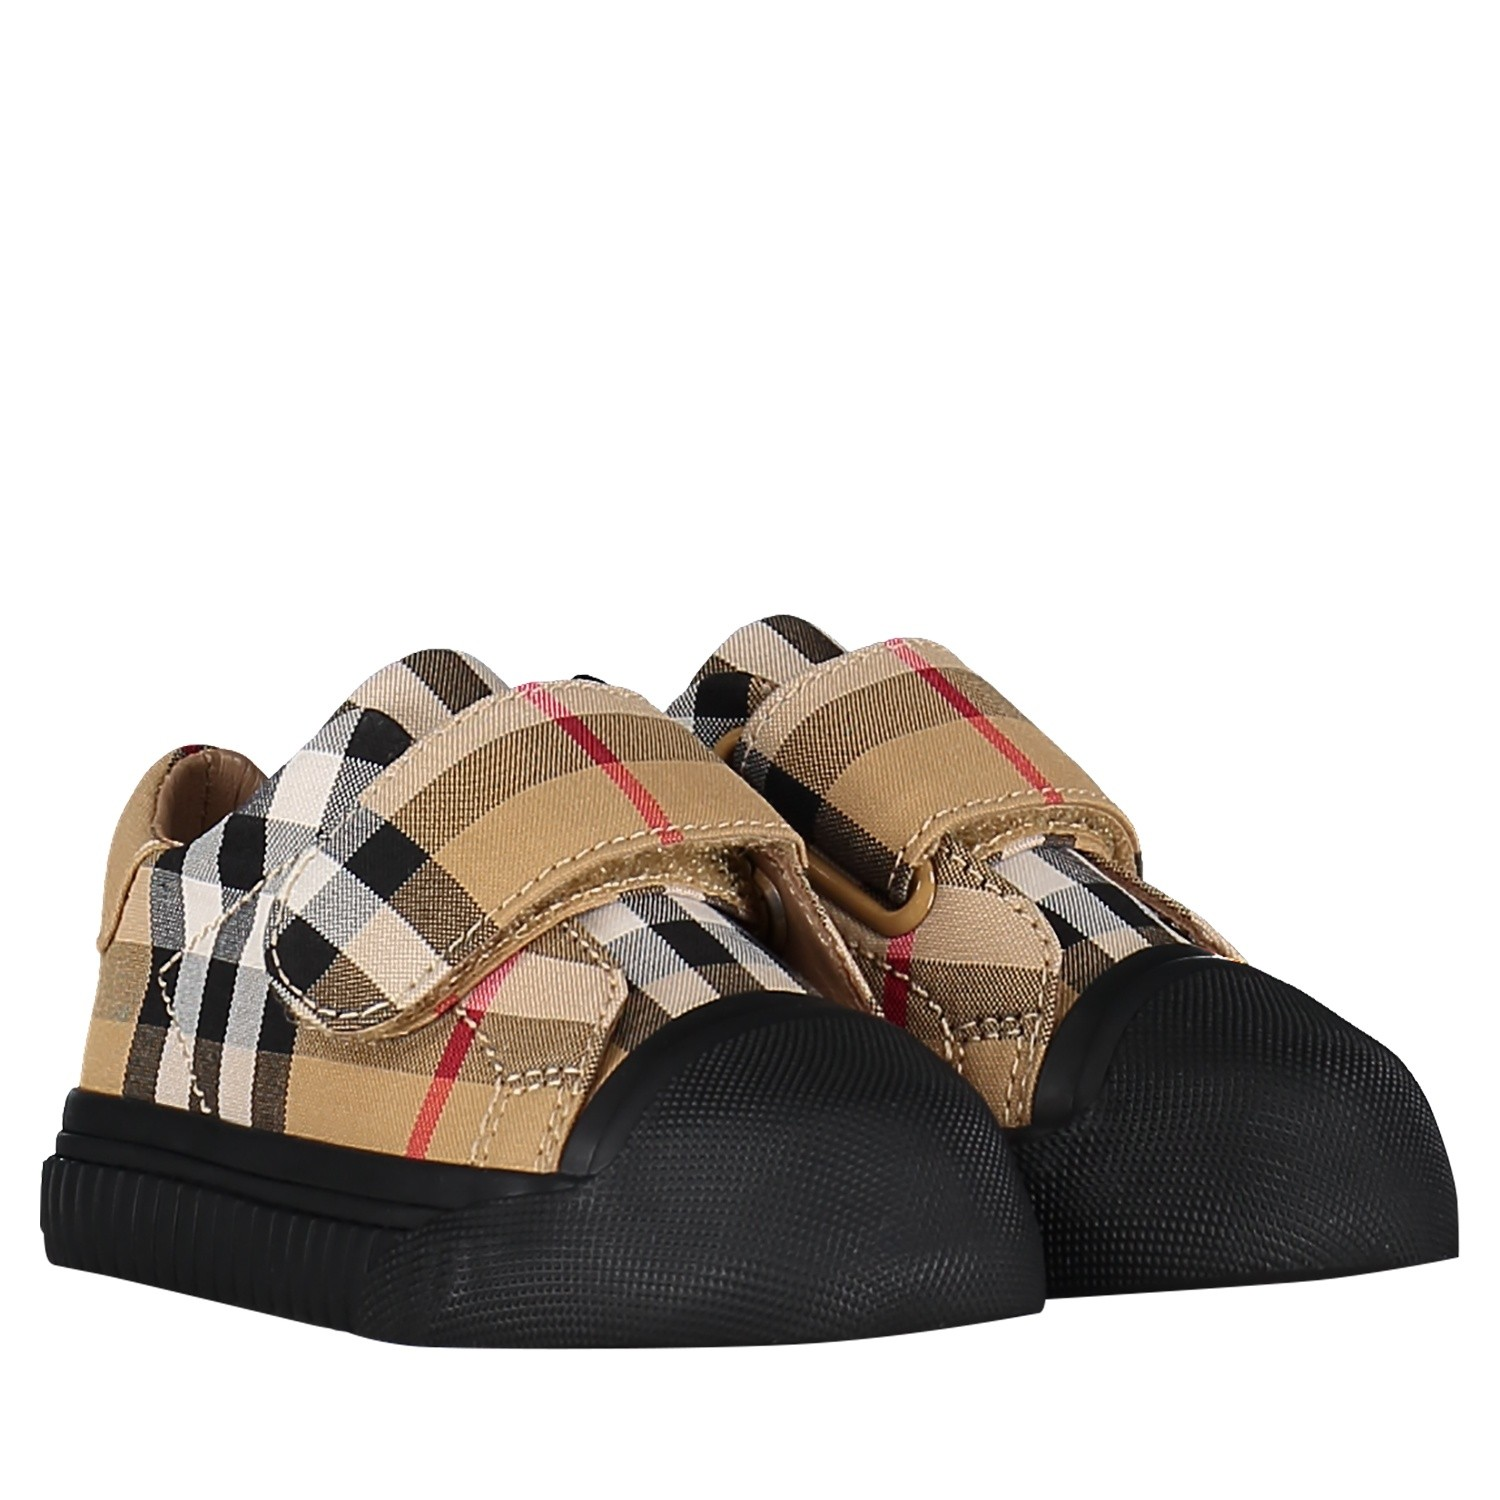 Burberry Shoes Sale South Africa